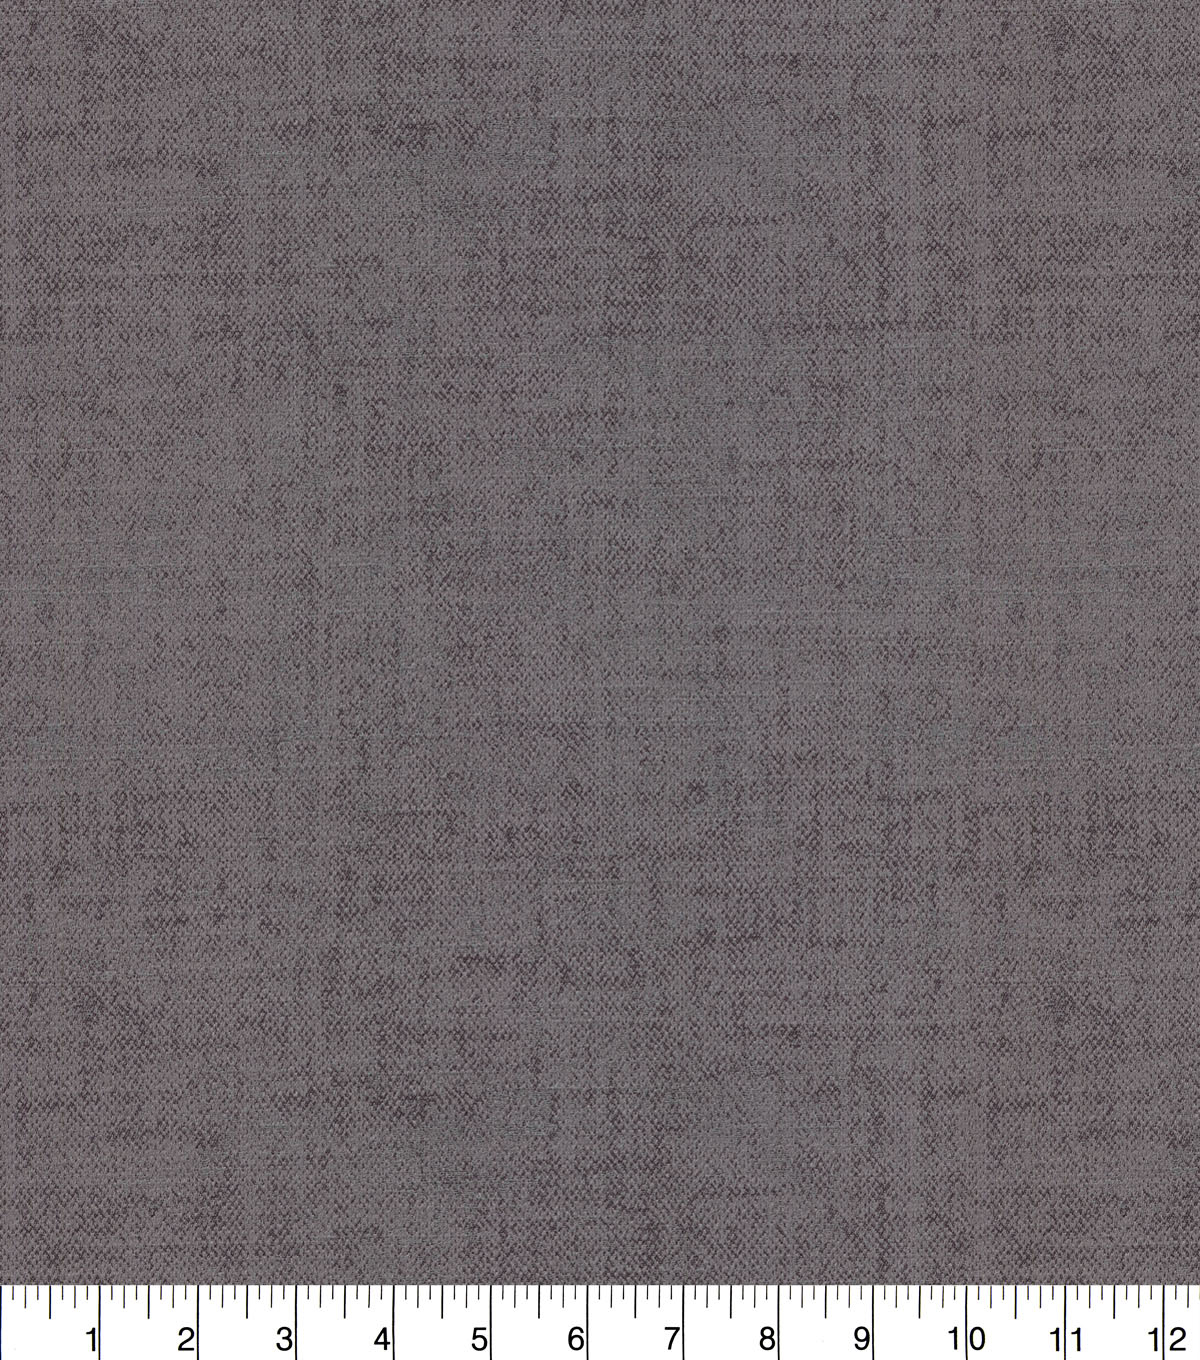 Home Decor 8\u0022x8\u0022 Fabric Swatch-P/K Lifestyles Exposure Granite